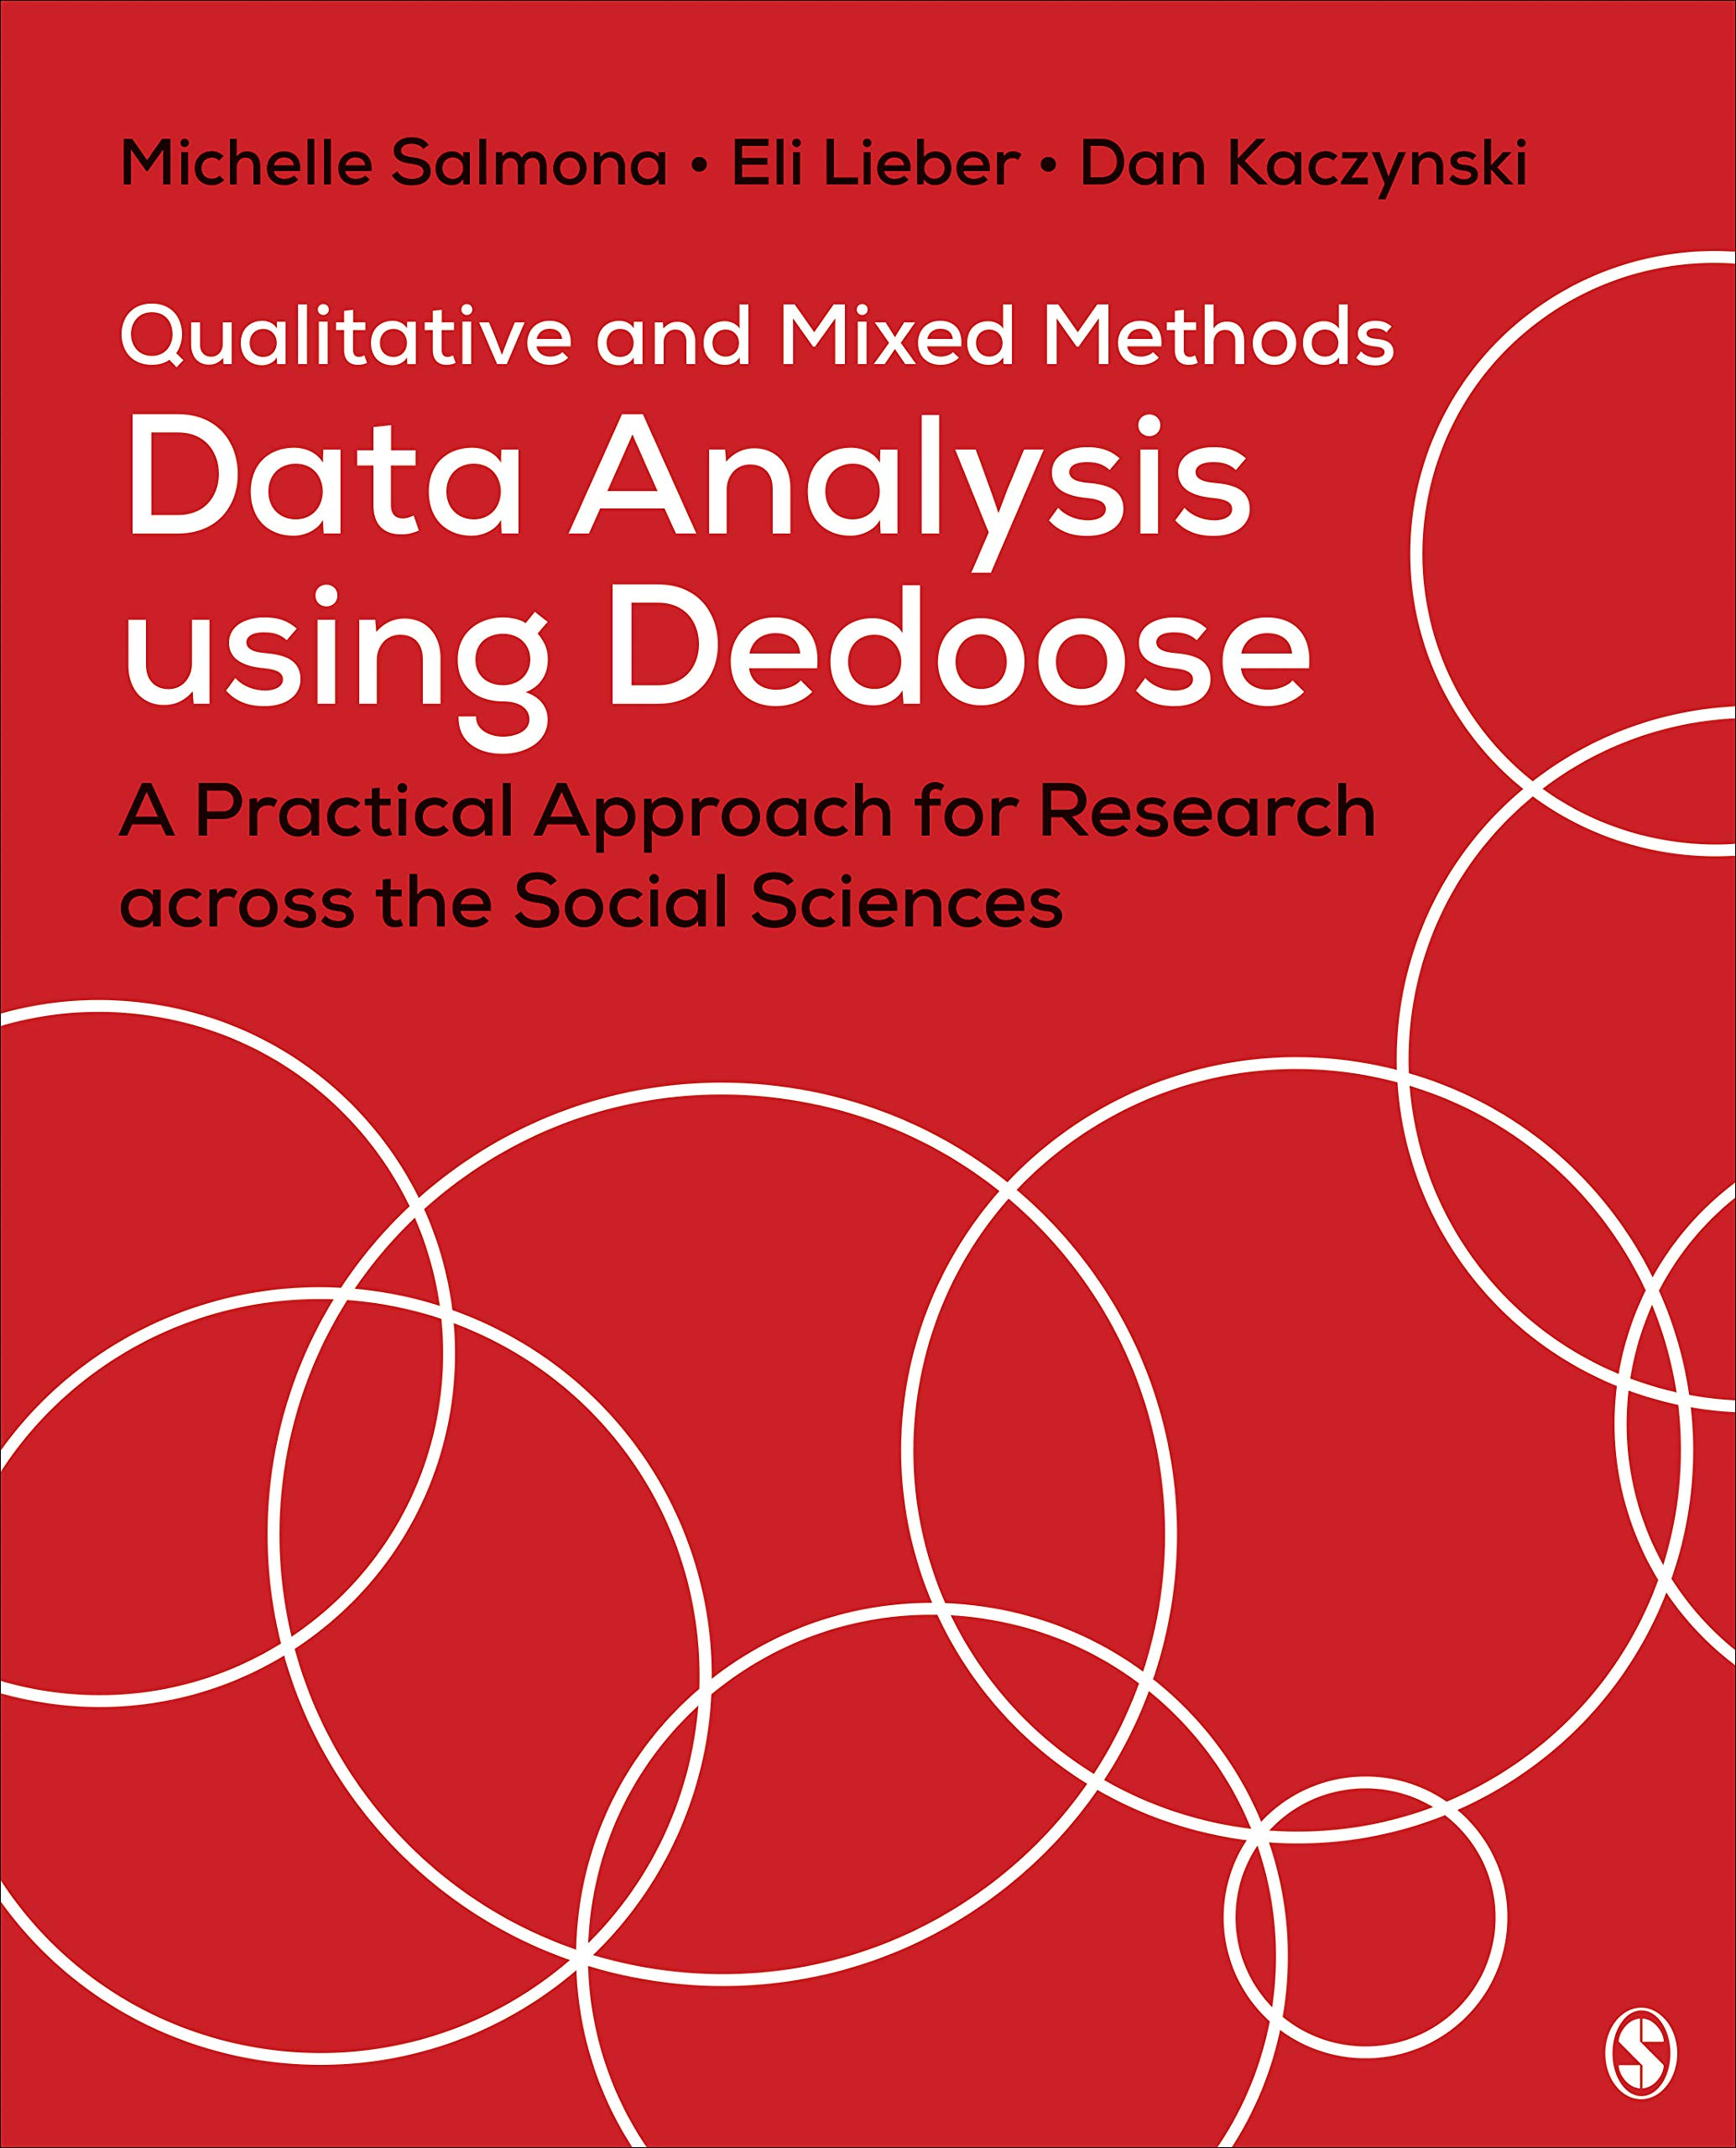 Qualitative and Mixed Methods Data Analysis Using Dedoose: A Practical Approach for Research Across the Social Sciences by SAGE Publications, Inc